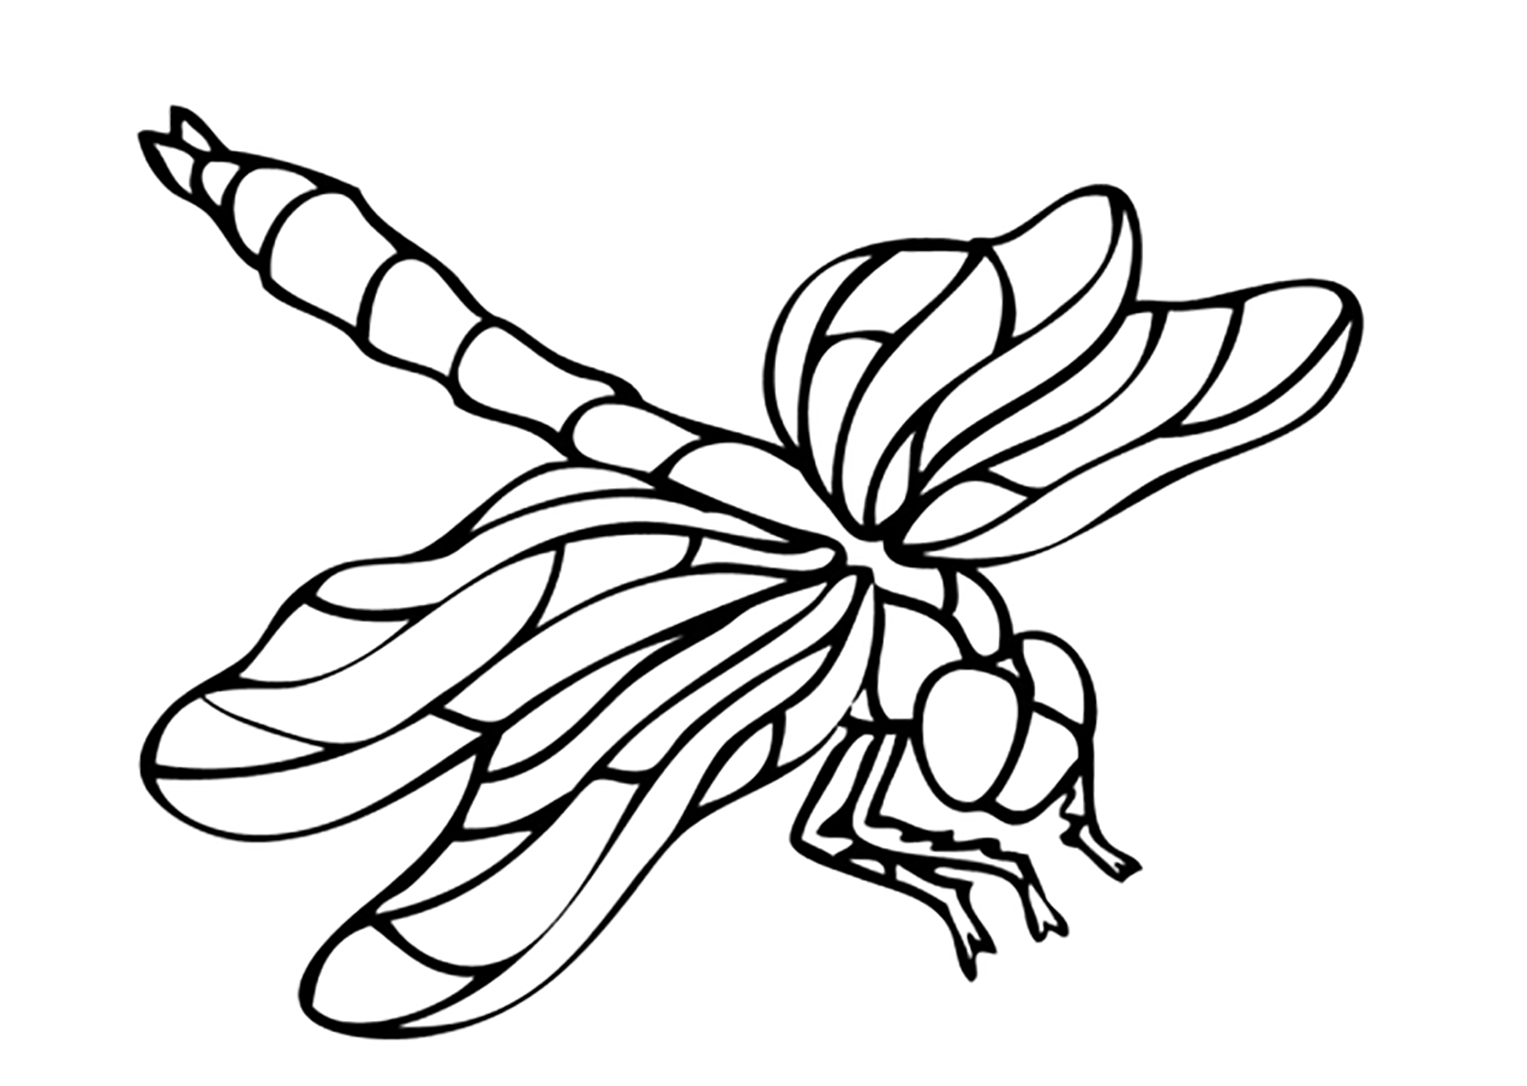 insect coloring pictures insects to print insects kids coloring pages coloring insect pictures